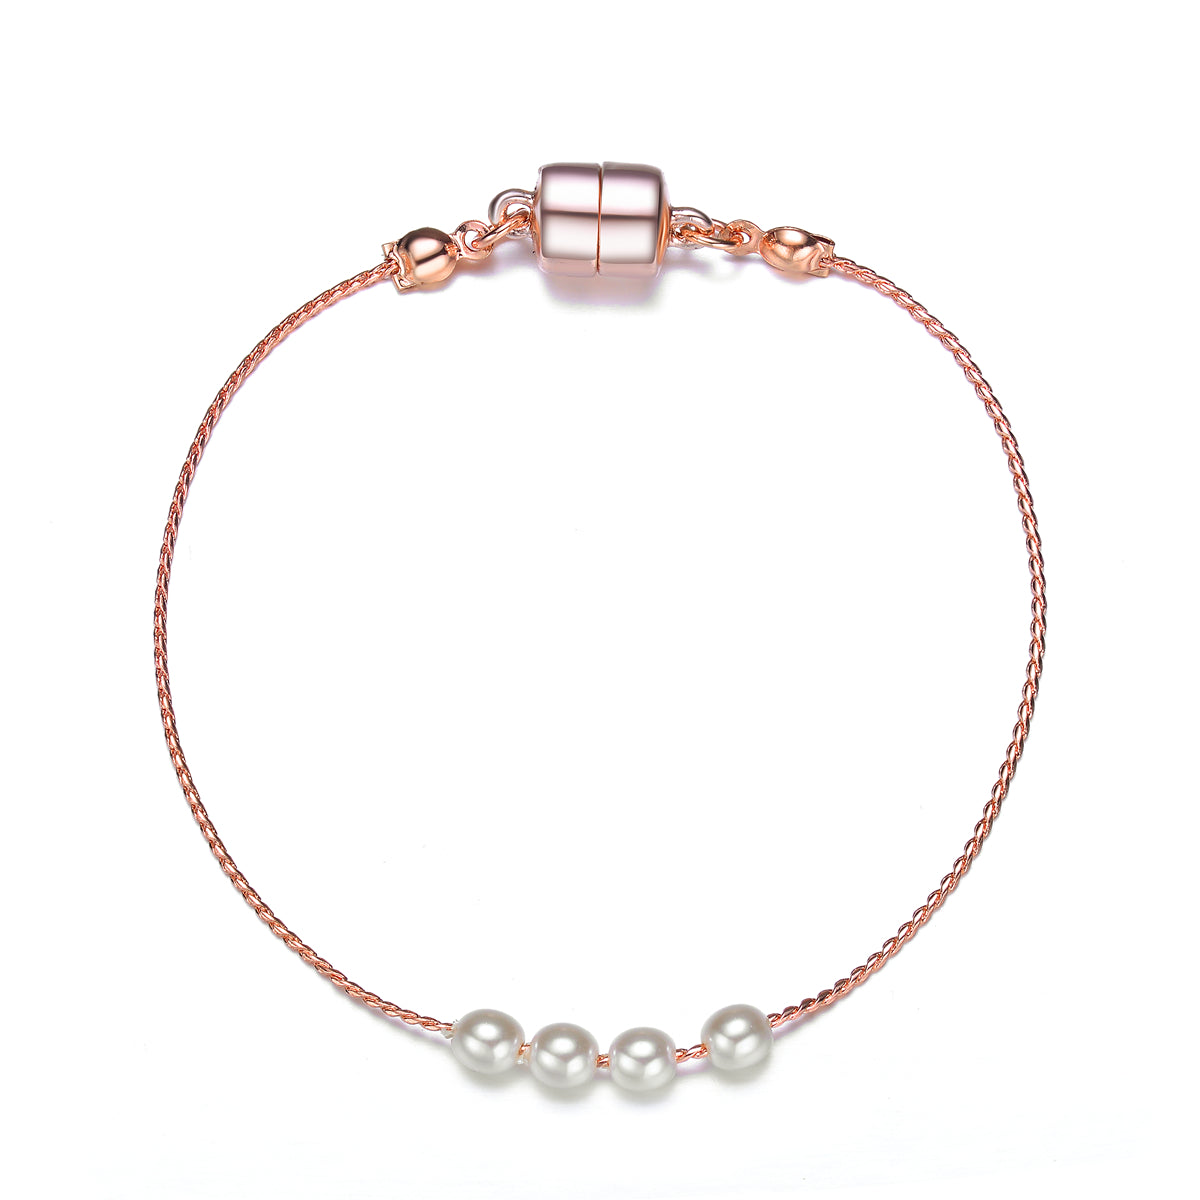 Carol Pearl Collection-Jewels to Jet-Magnetic Clasp Jewelry